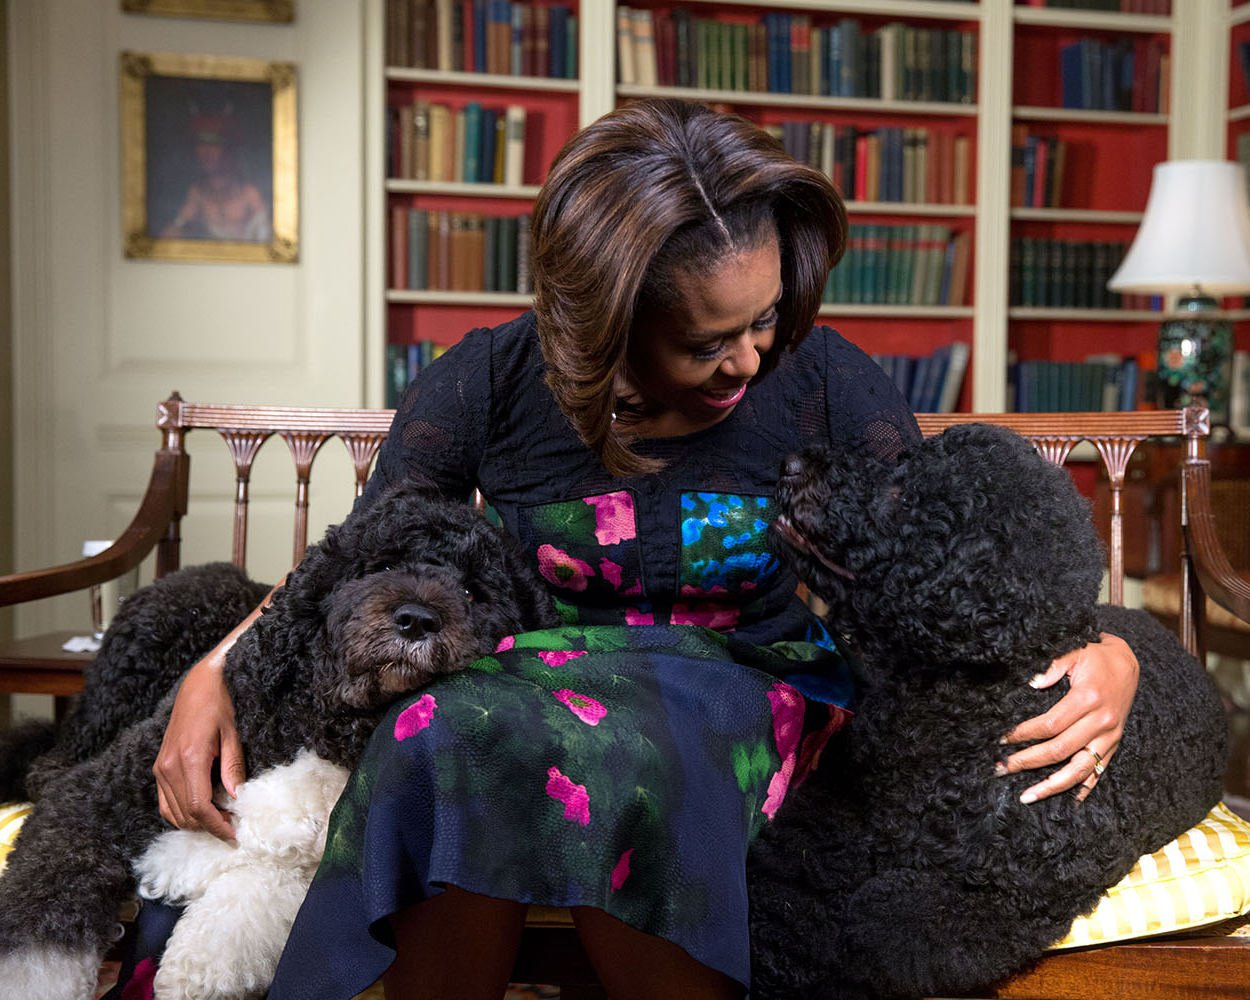 """FIRST LADY MICHELLE OBAMA WITH FAMILY DOGS """"BO"""" AND """"SUNNY"""" 8X10 PHOTO (EE-065)"""